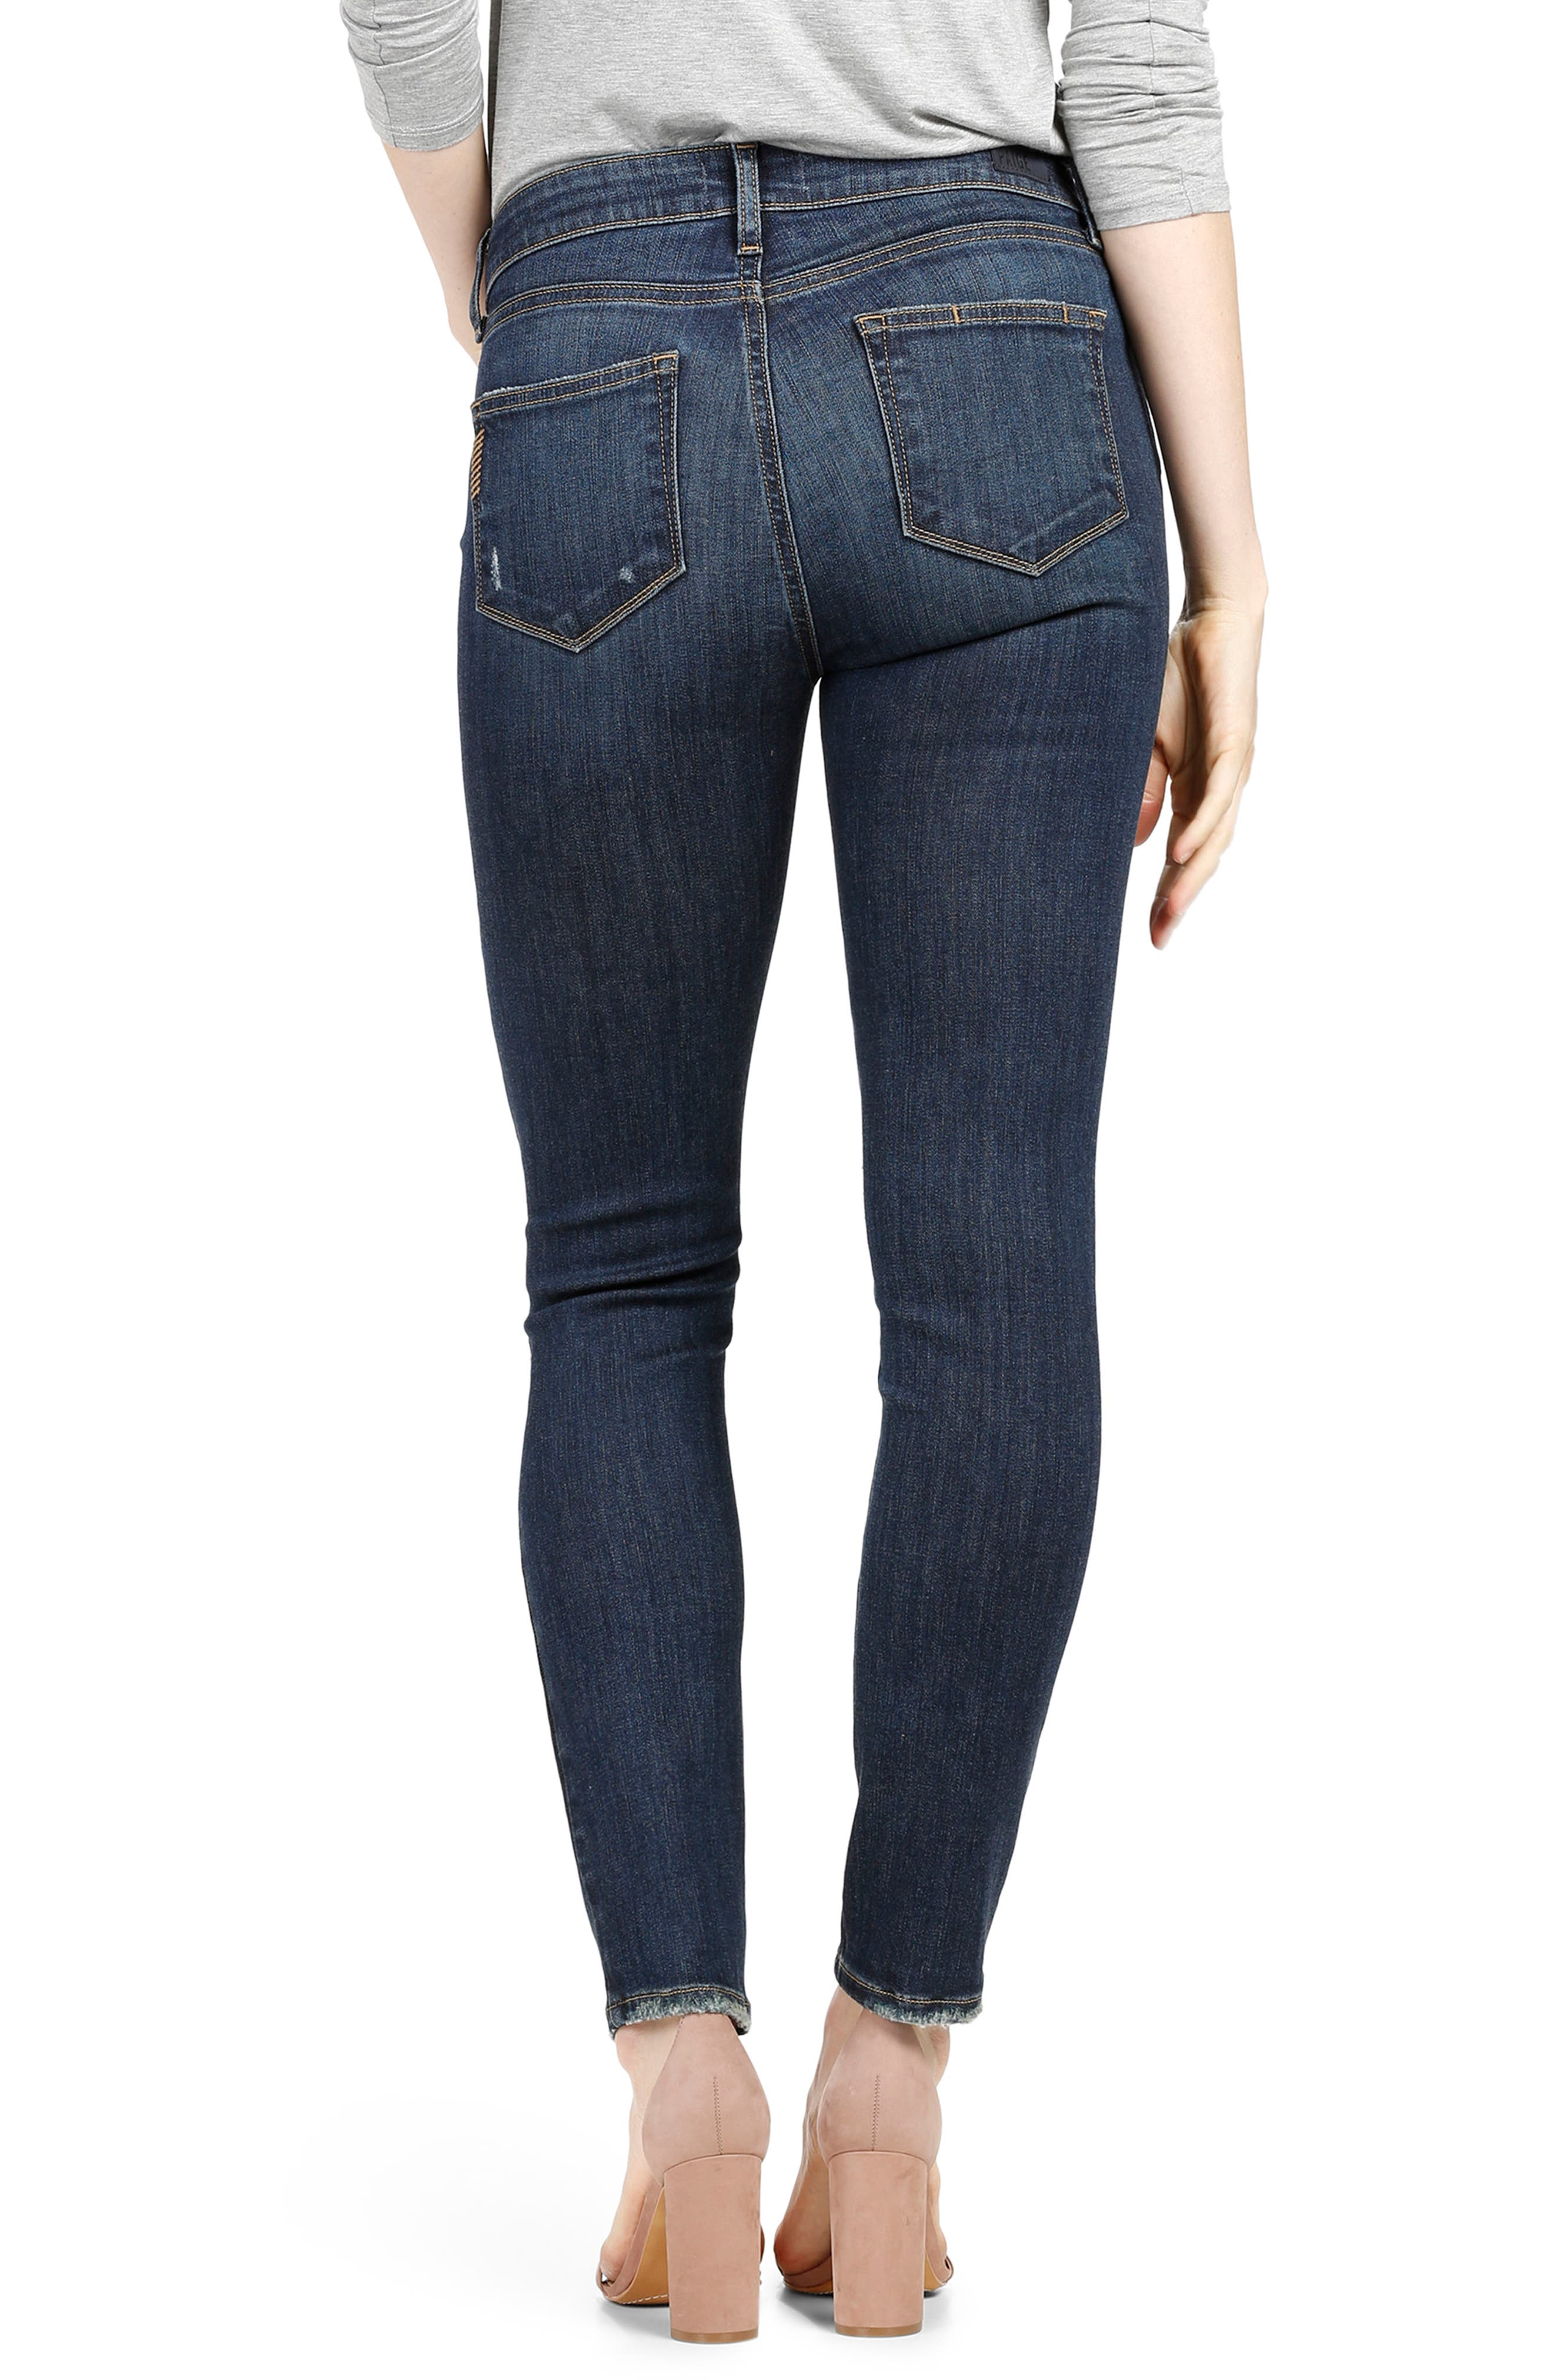 Transcend Vintage - Hoxton Ankle Skinny Jeans,                             Alternate thumbnail 2, color,                             Cleary Destructed